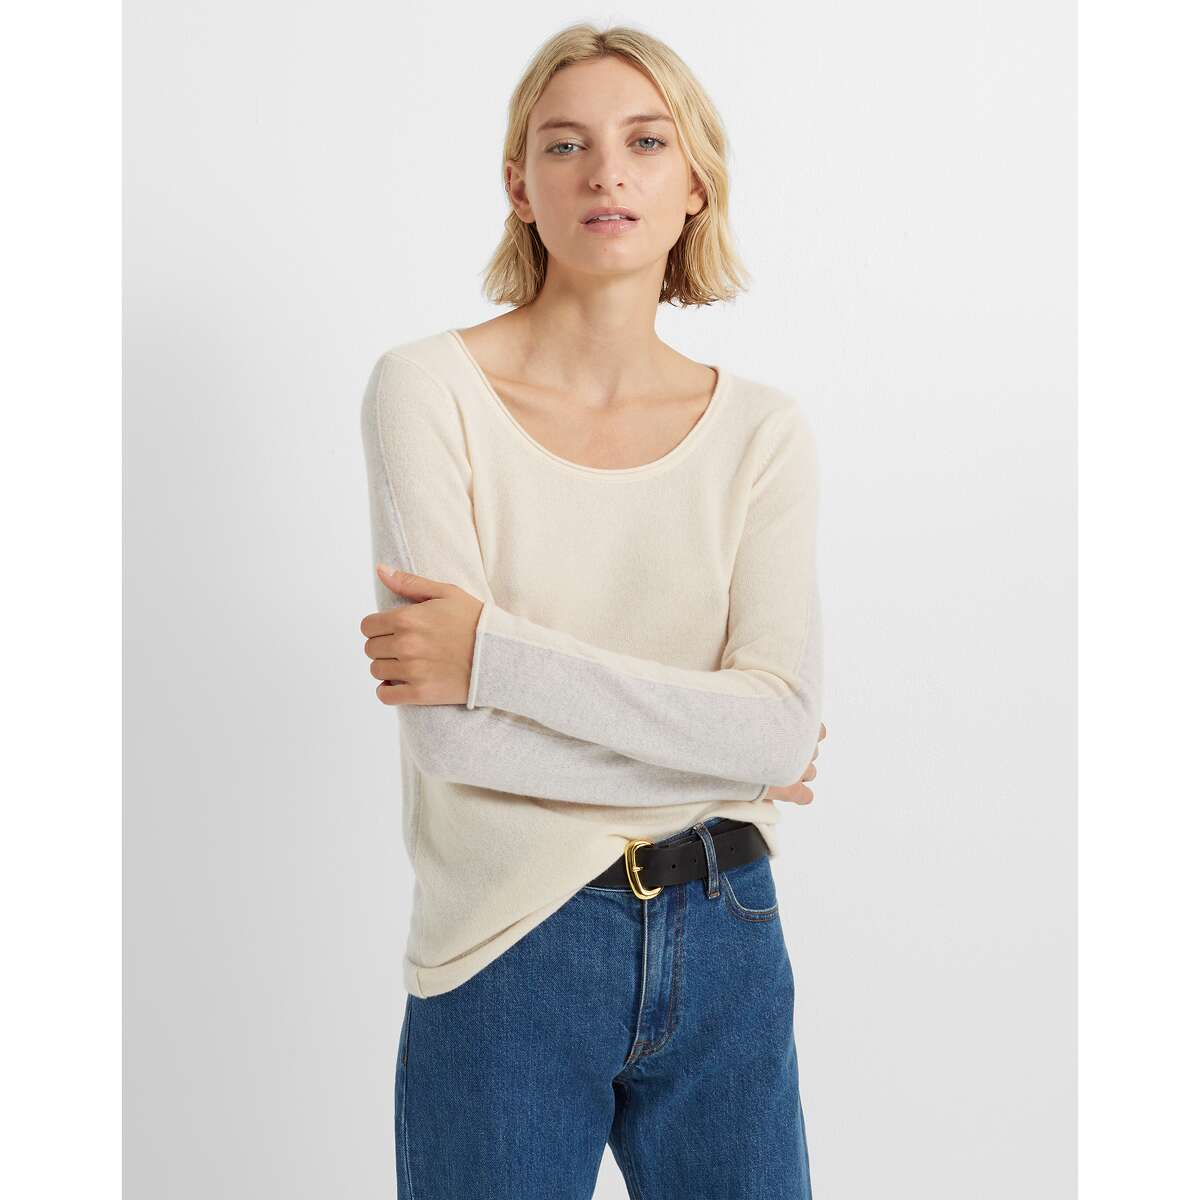 This women's cashmere sweater at Club Monaco gets all the way down to $54 after an extra 40 percent off the sale price and 30 percent off all purchases.